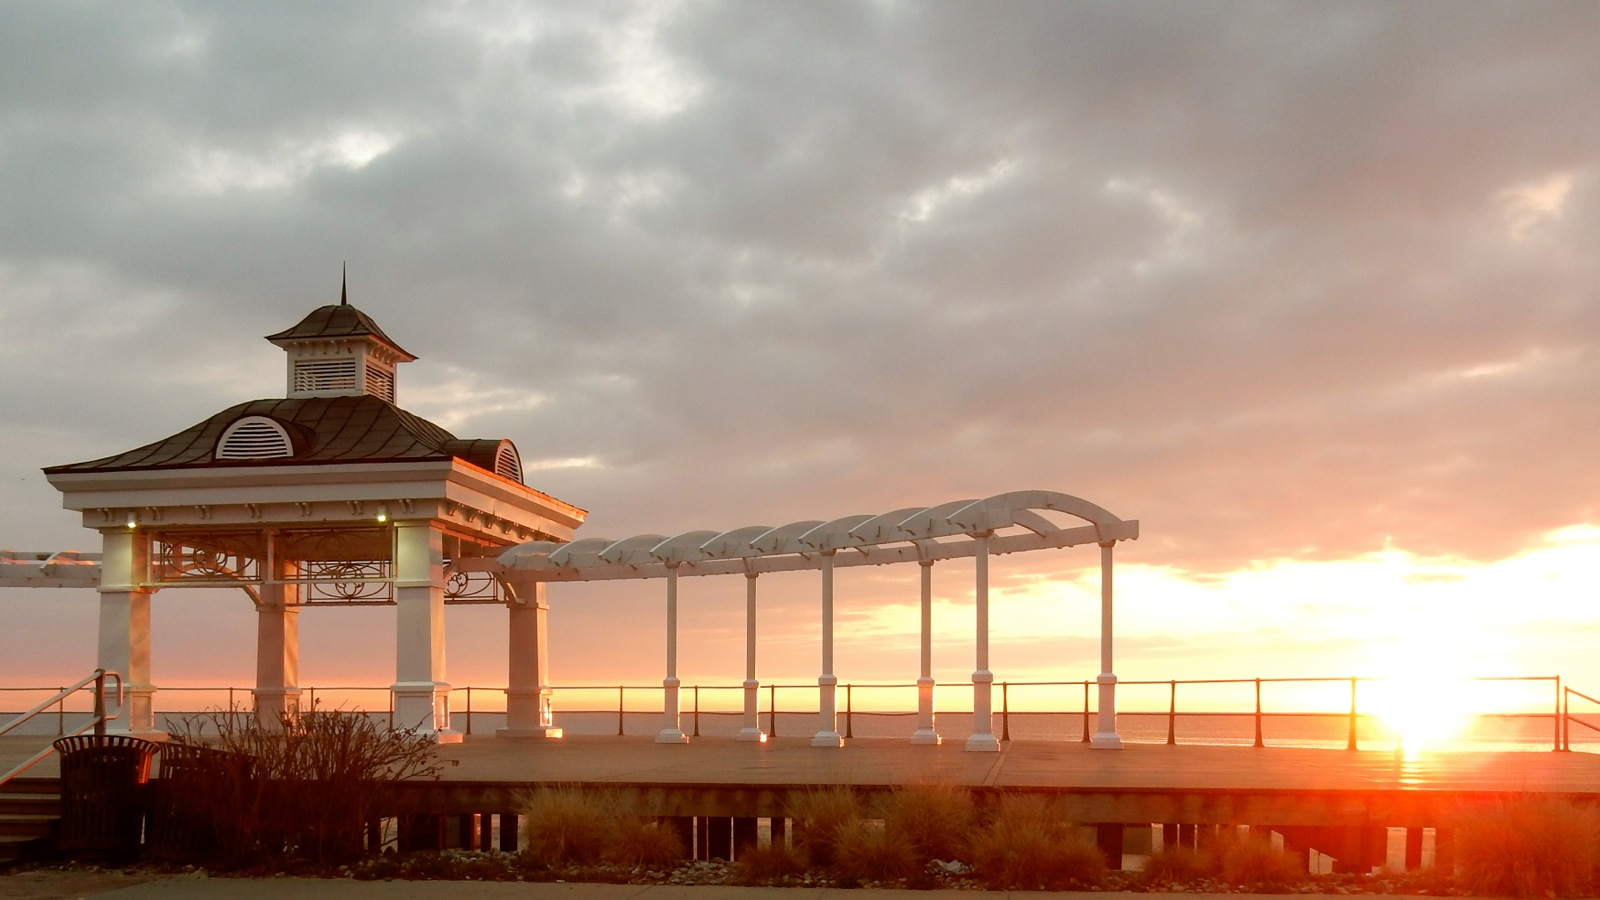 Sunrise over Long Branch NJ Boardwalk tops list of romantic getaways in nj